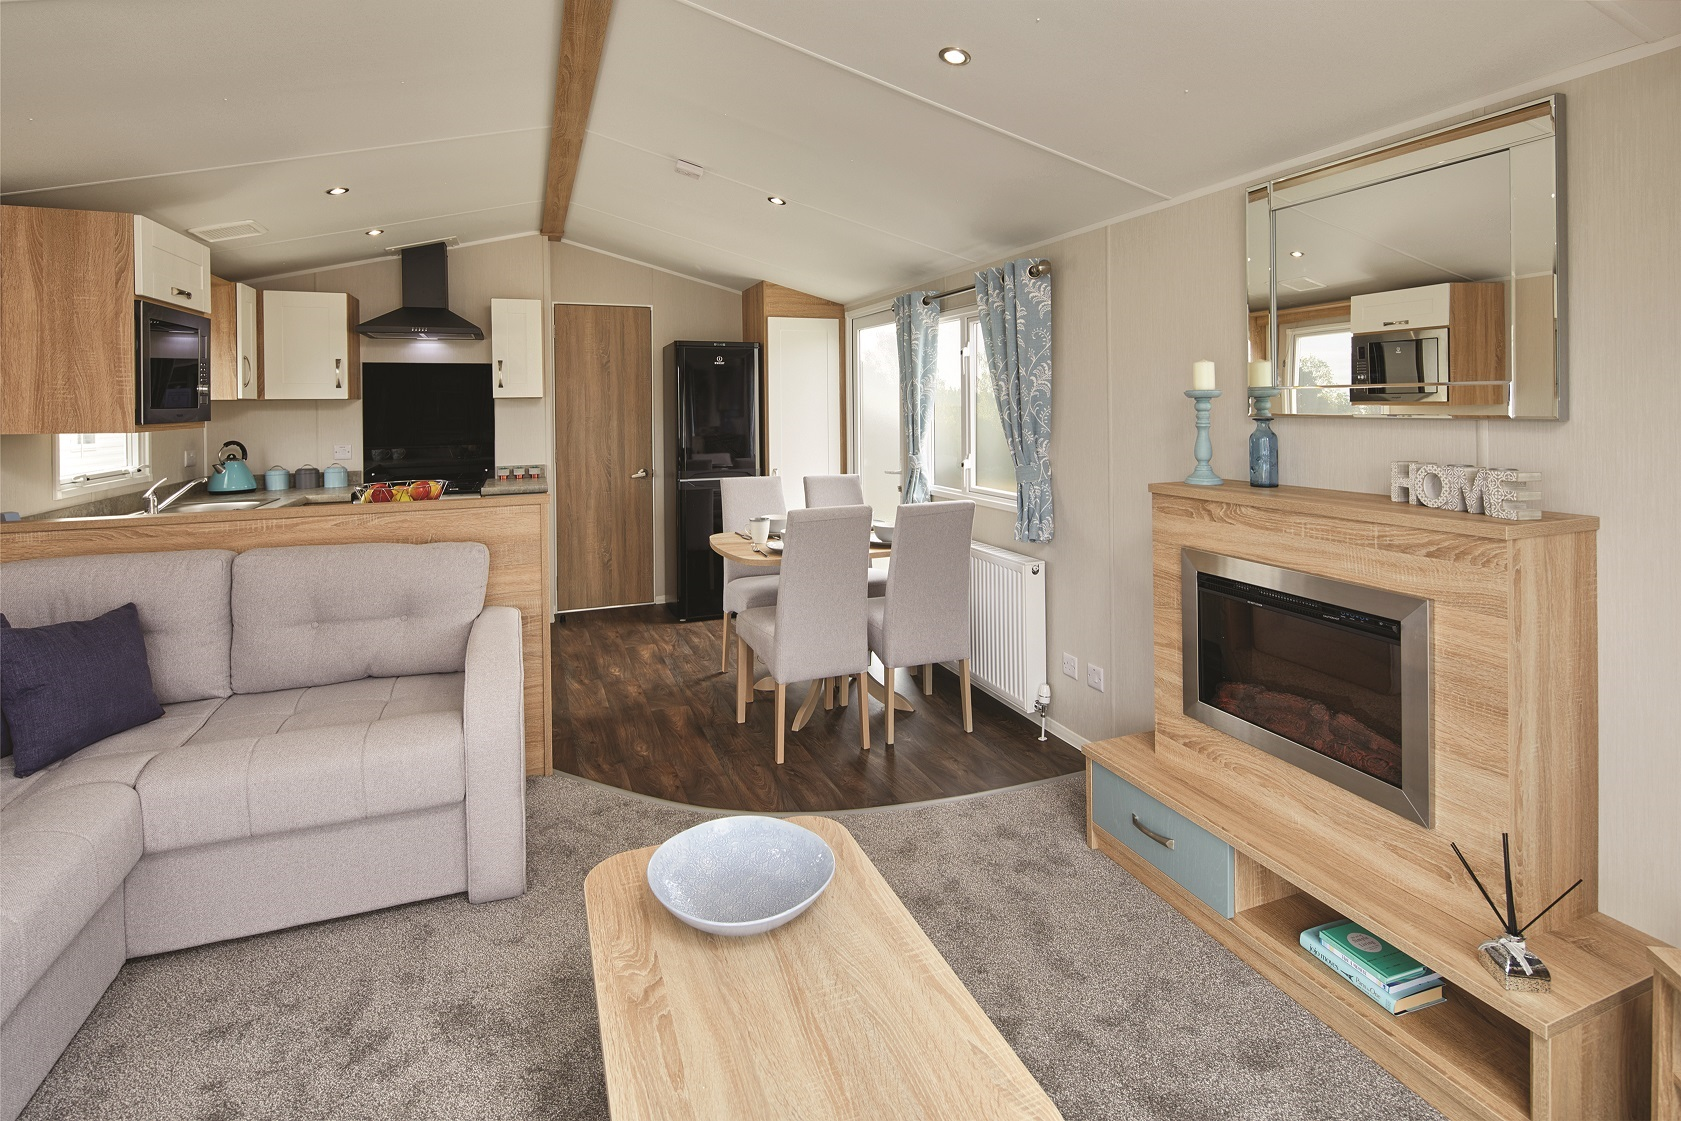 Willerby Sierra: New Static Caravans and Holiday Homes for Sale, Clifton, Morpeth Large Image 2